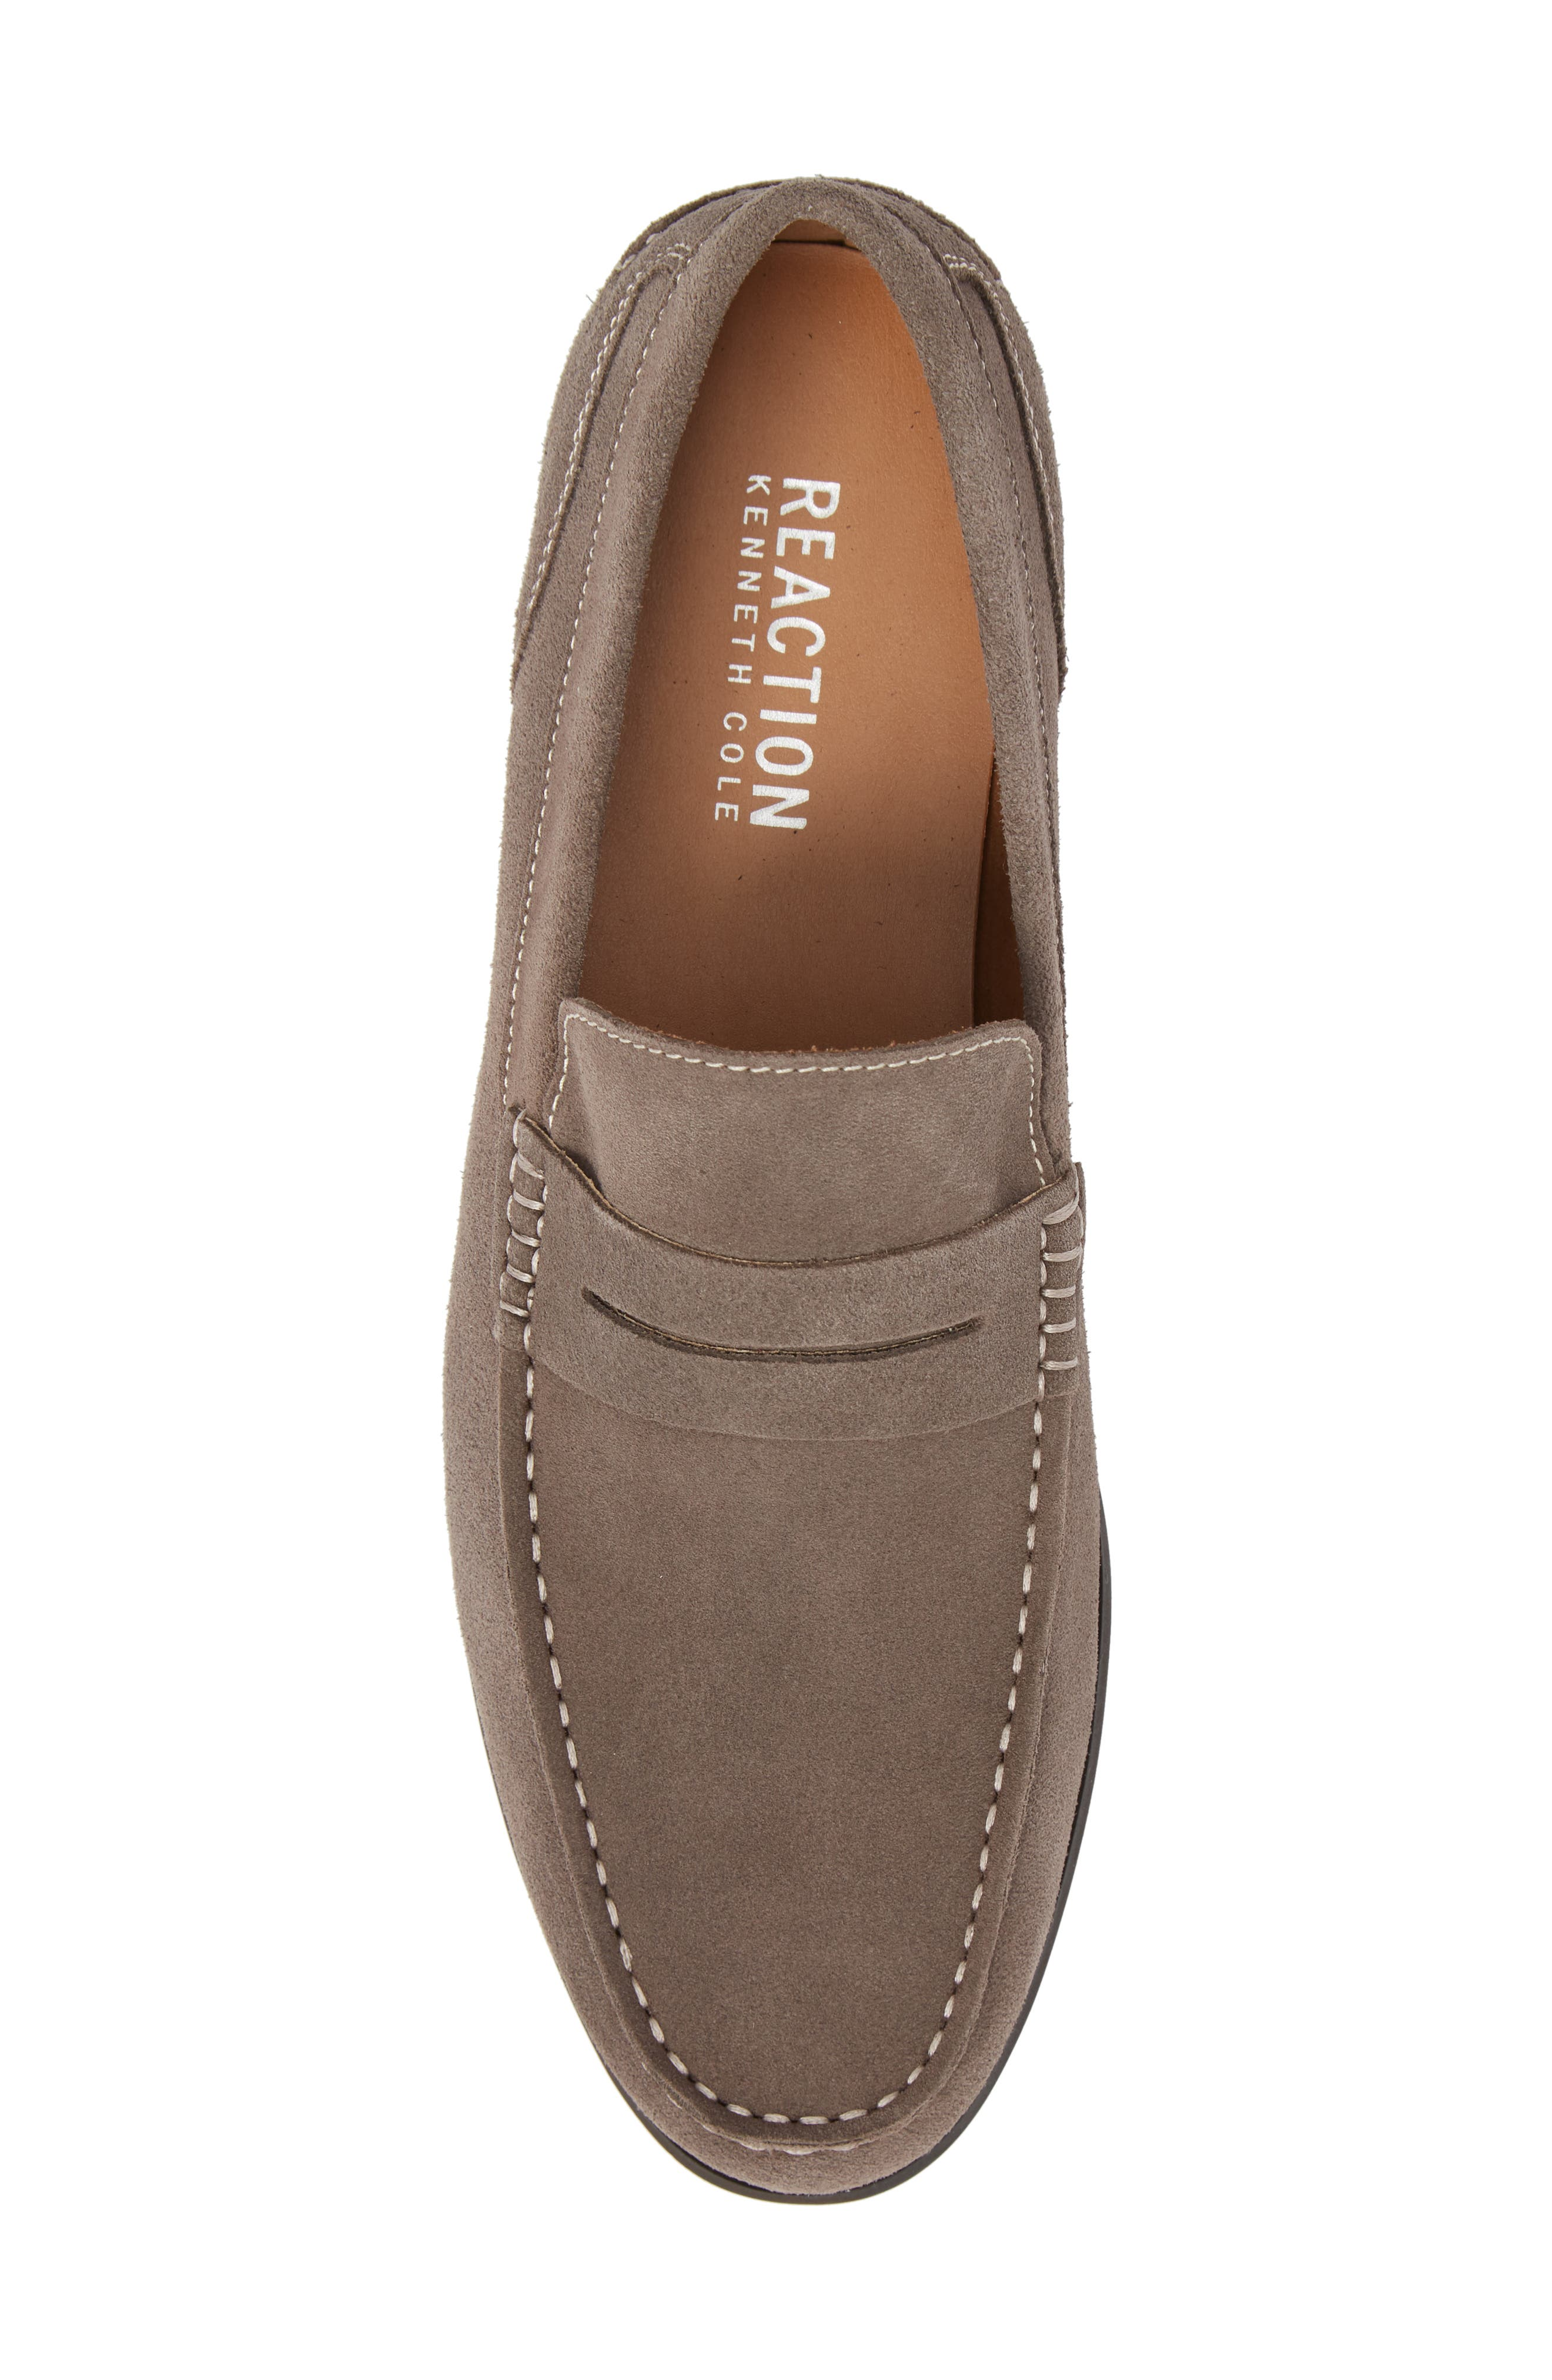 Crespo Penny Loafer,                             Alternate thumbnail 5, color,                             Grey